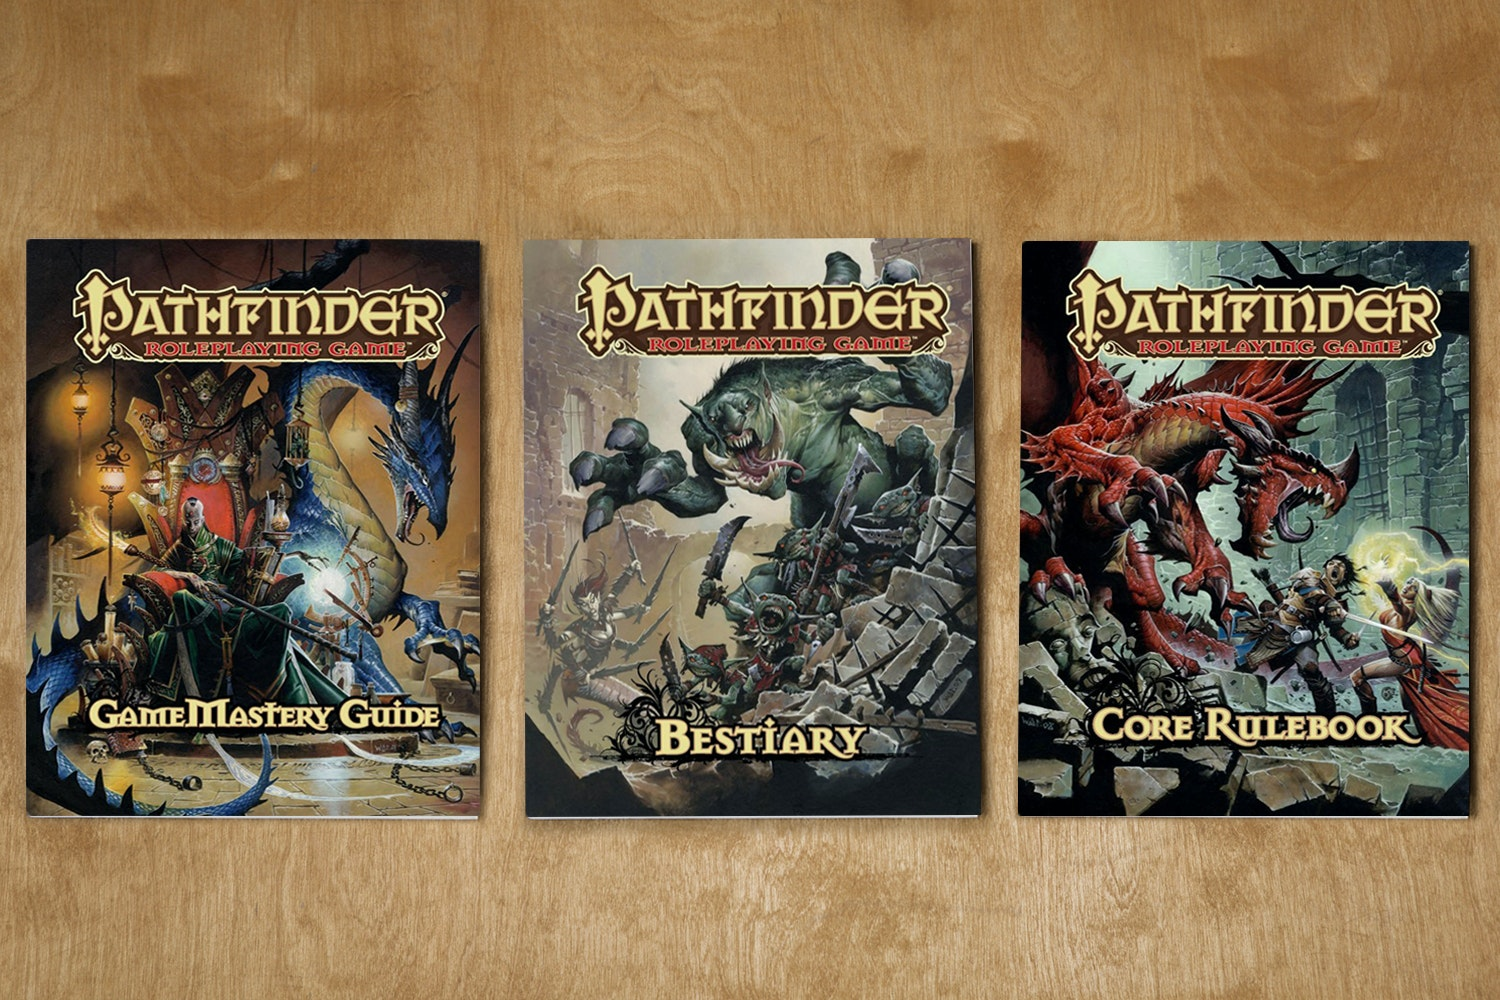 Pathfinder Roleplaying Book Bundle